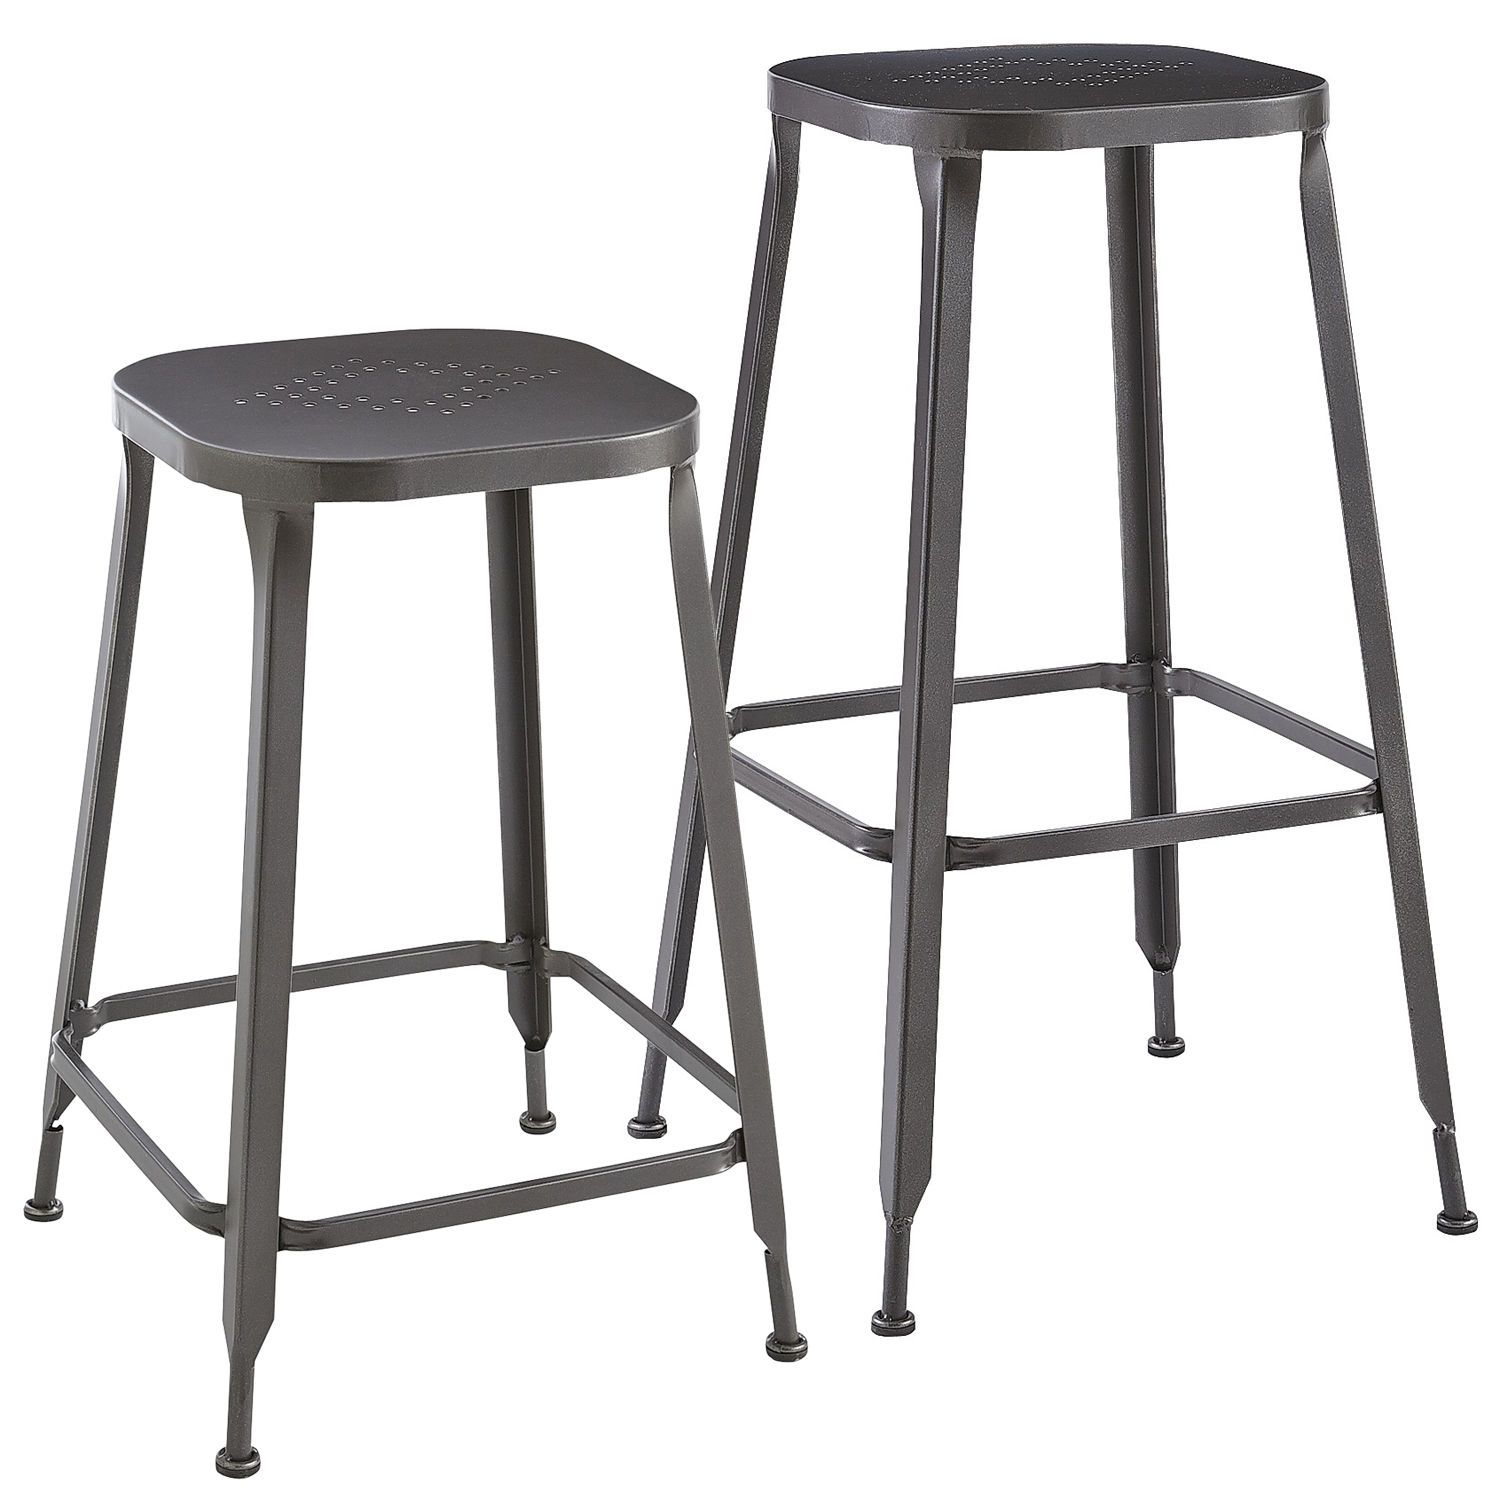 Remarkable Weldon Backless Bar Counter Stools Gunmetal Pier 1 Gmtry Best Dining Table And Chair Ideas Images Gmtryco